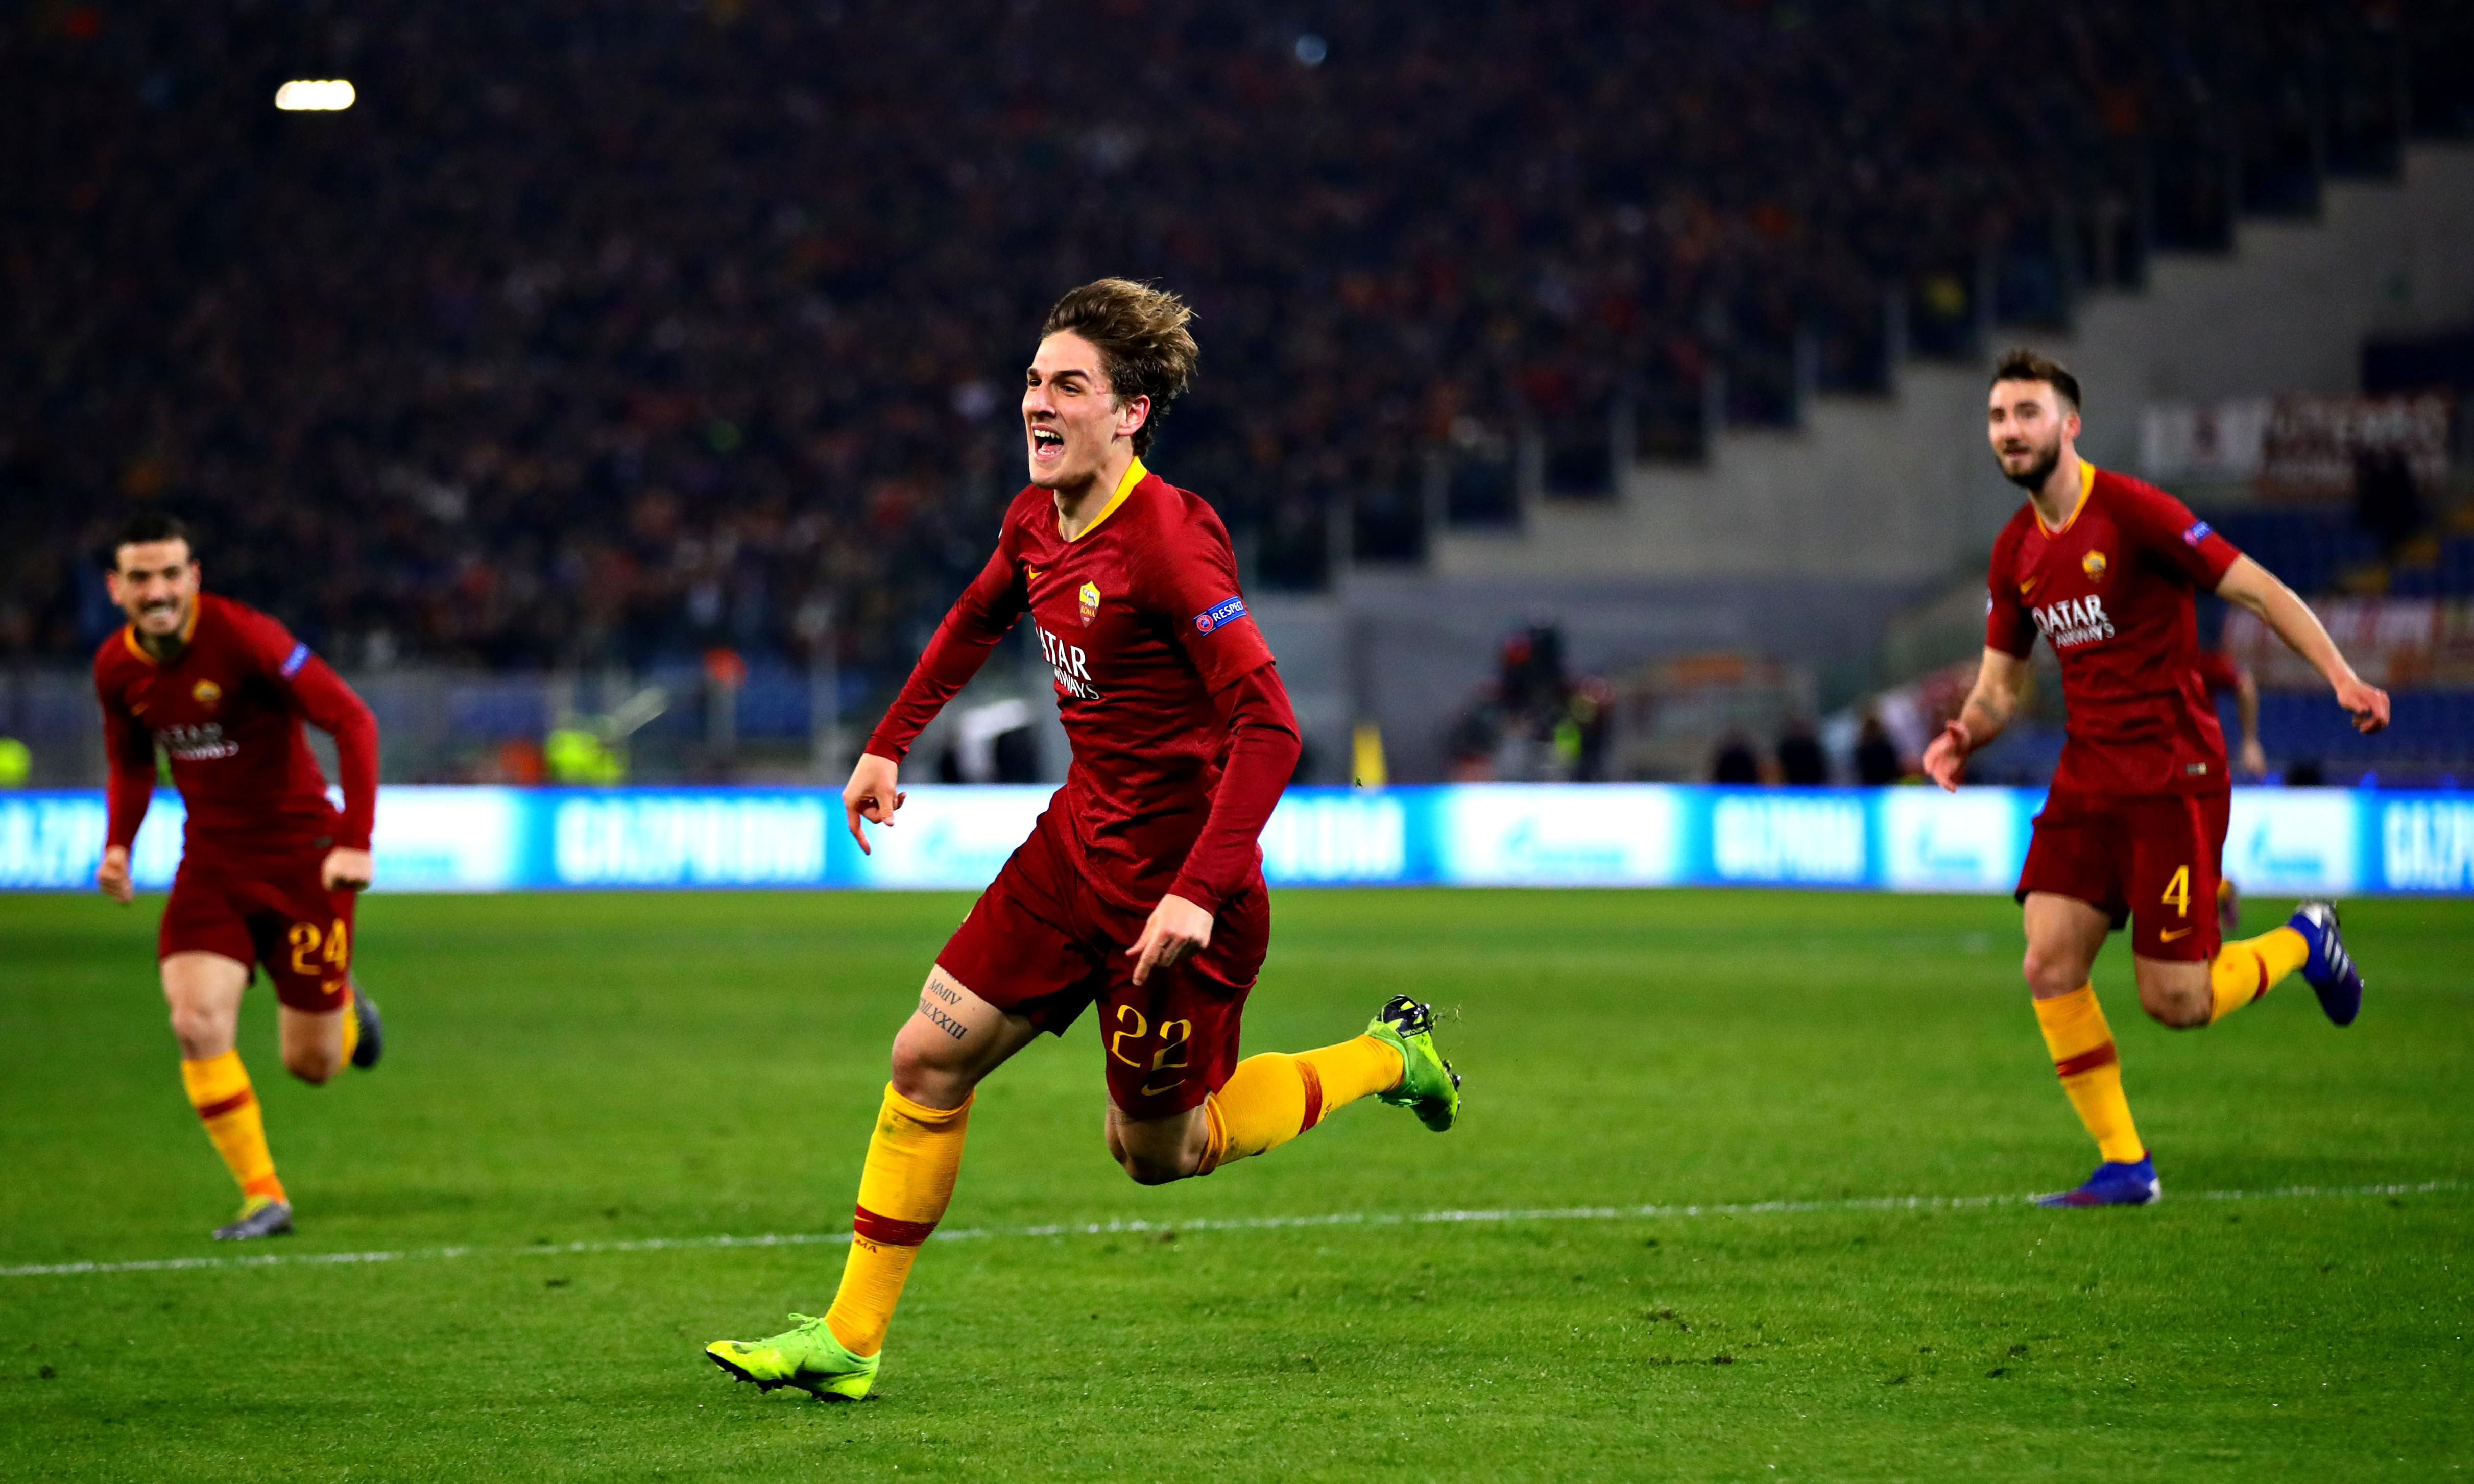 Roma's Nicolò Zaniolo: 'I'm not Totti, but one day I hope to be as good'